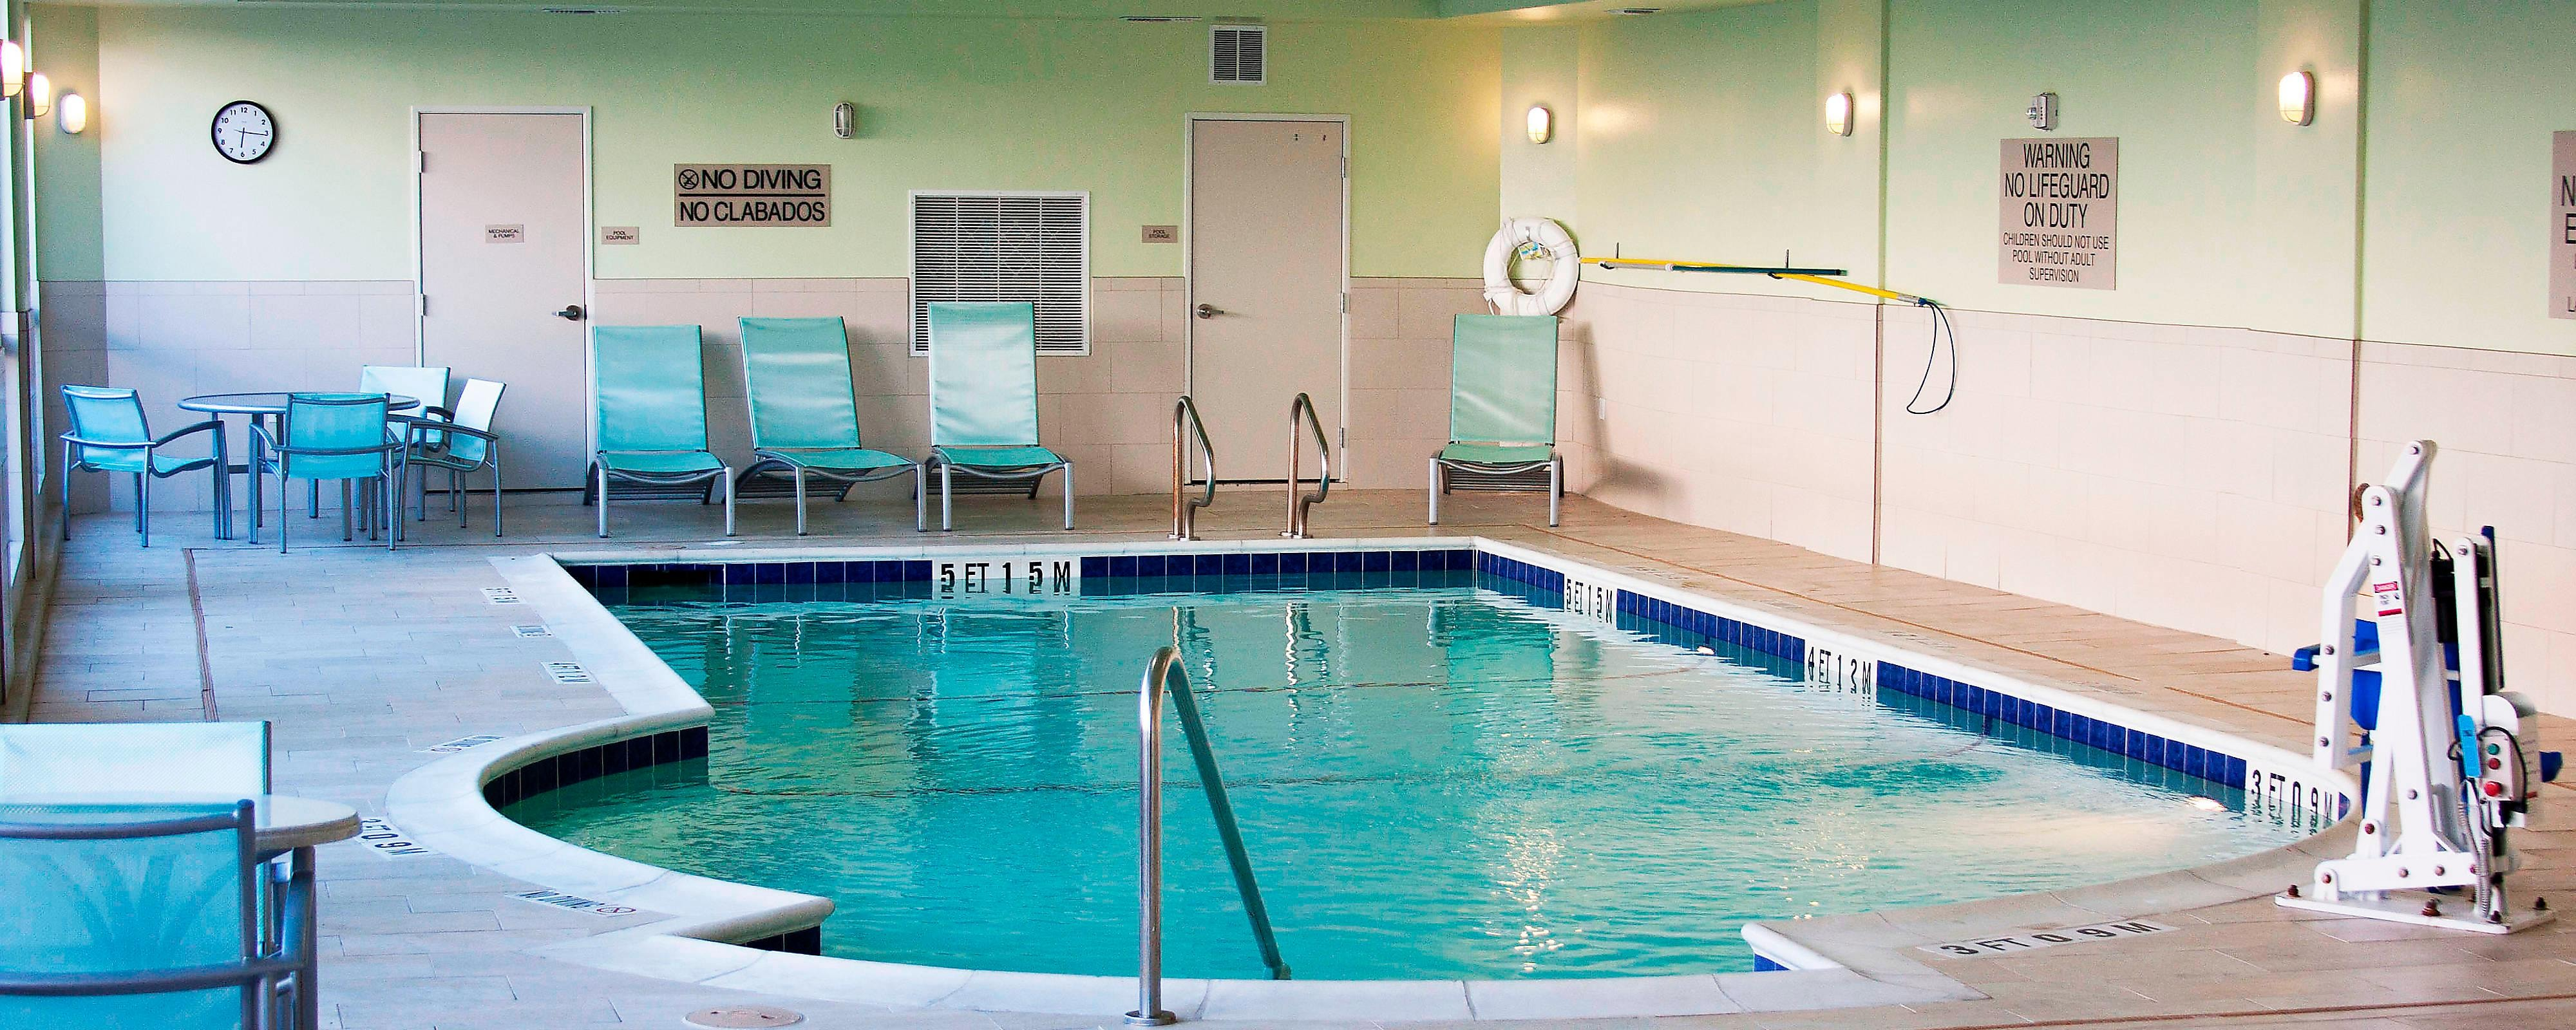 Hotels mit Pool in Corpus Christi